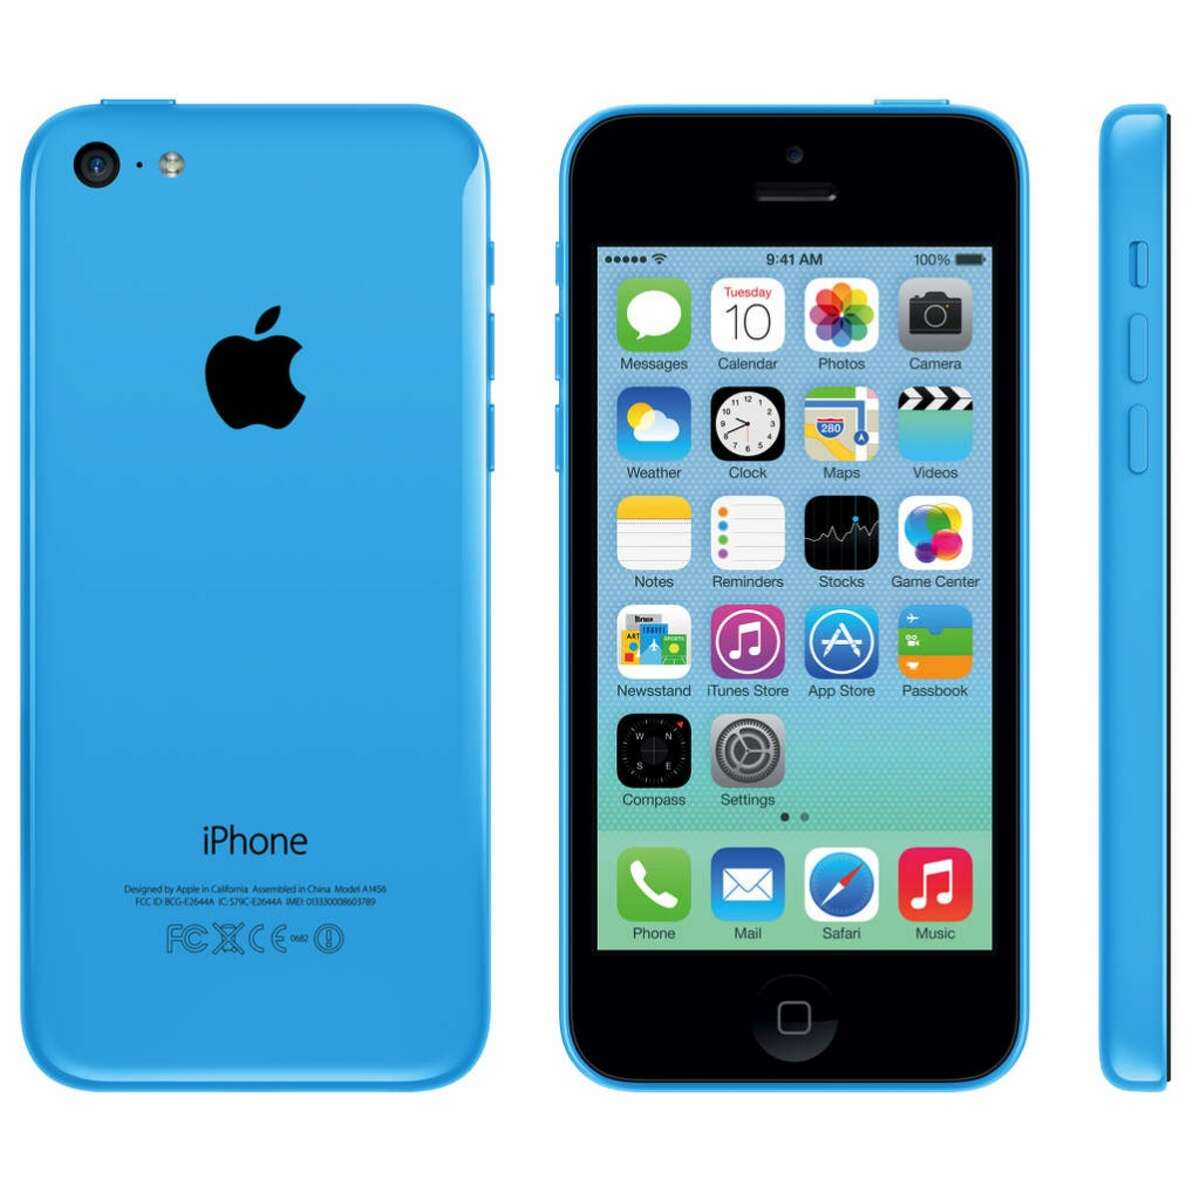 iPhone 5c A 16 MB 5c in good condition is worth about $25 on Gazelle.com